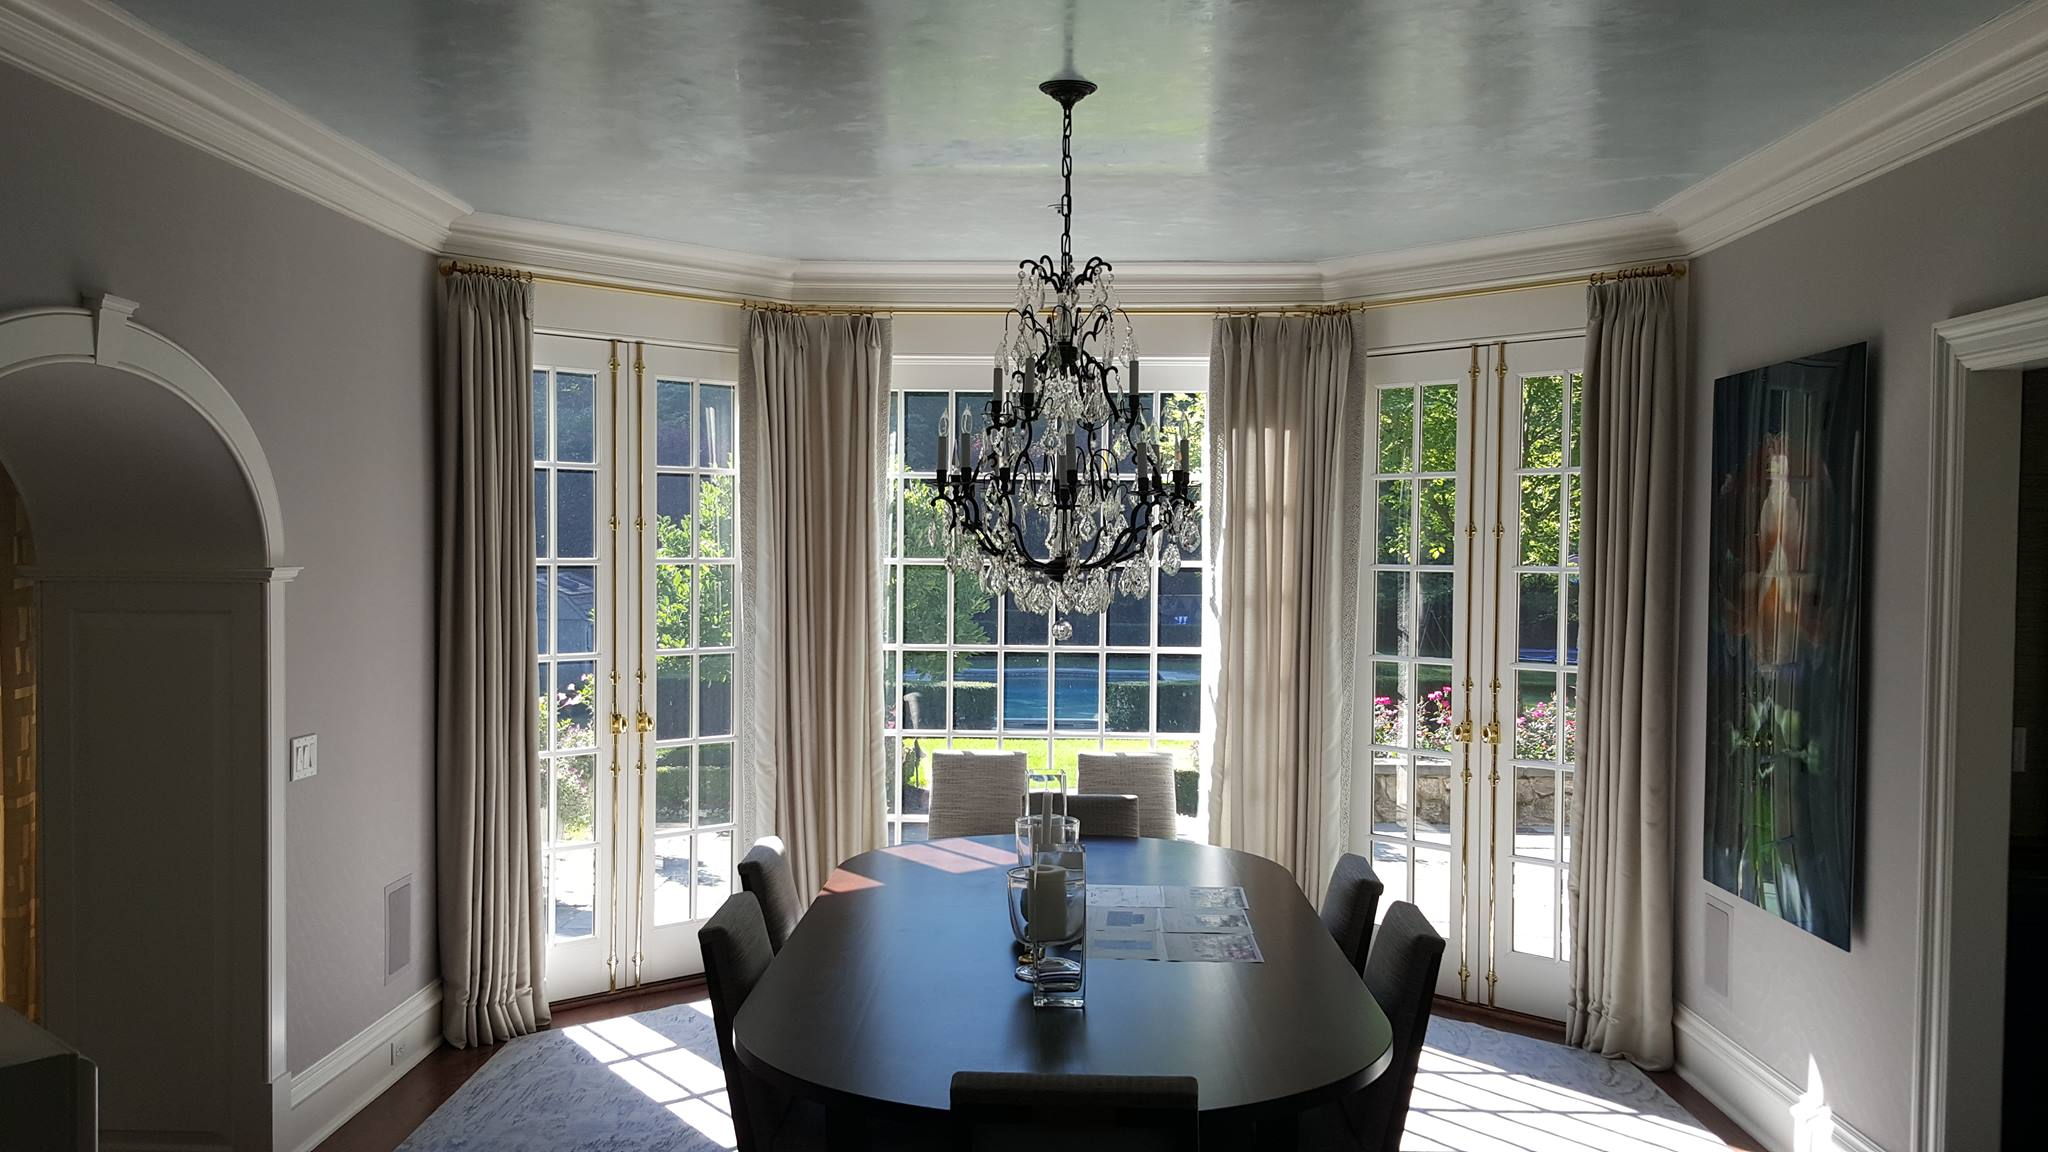 Venetian Plaster ceiling dining room Greenwhich CT mjp studios for designer Robin McGarry interiors